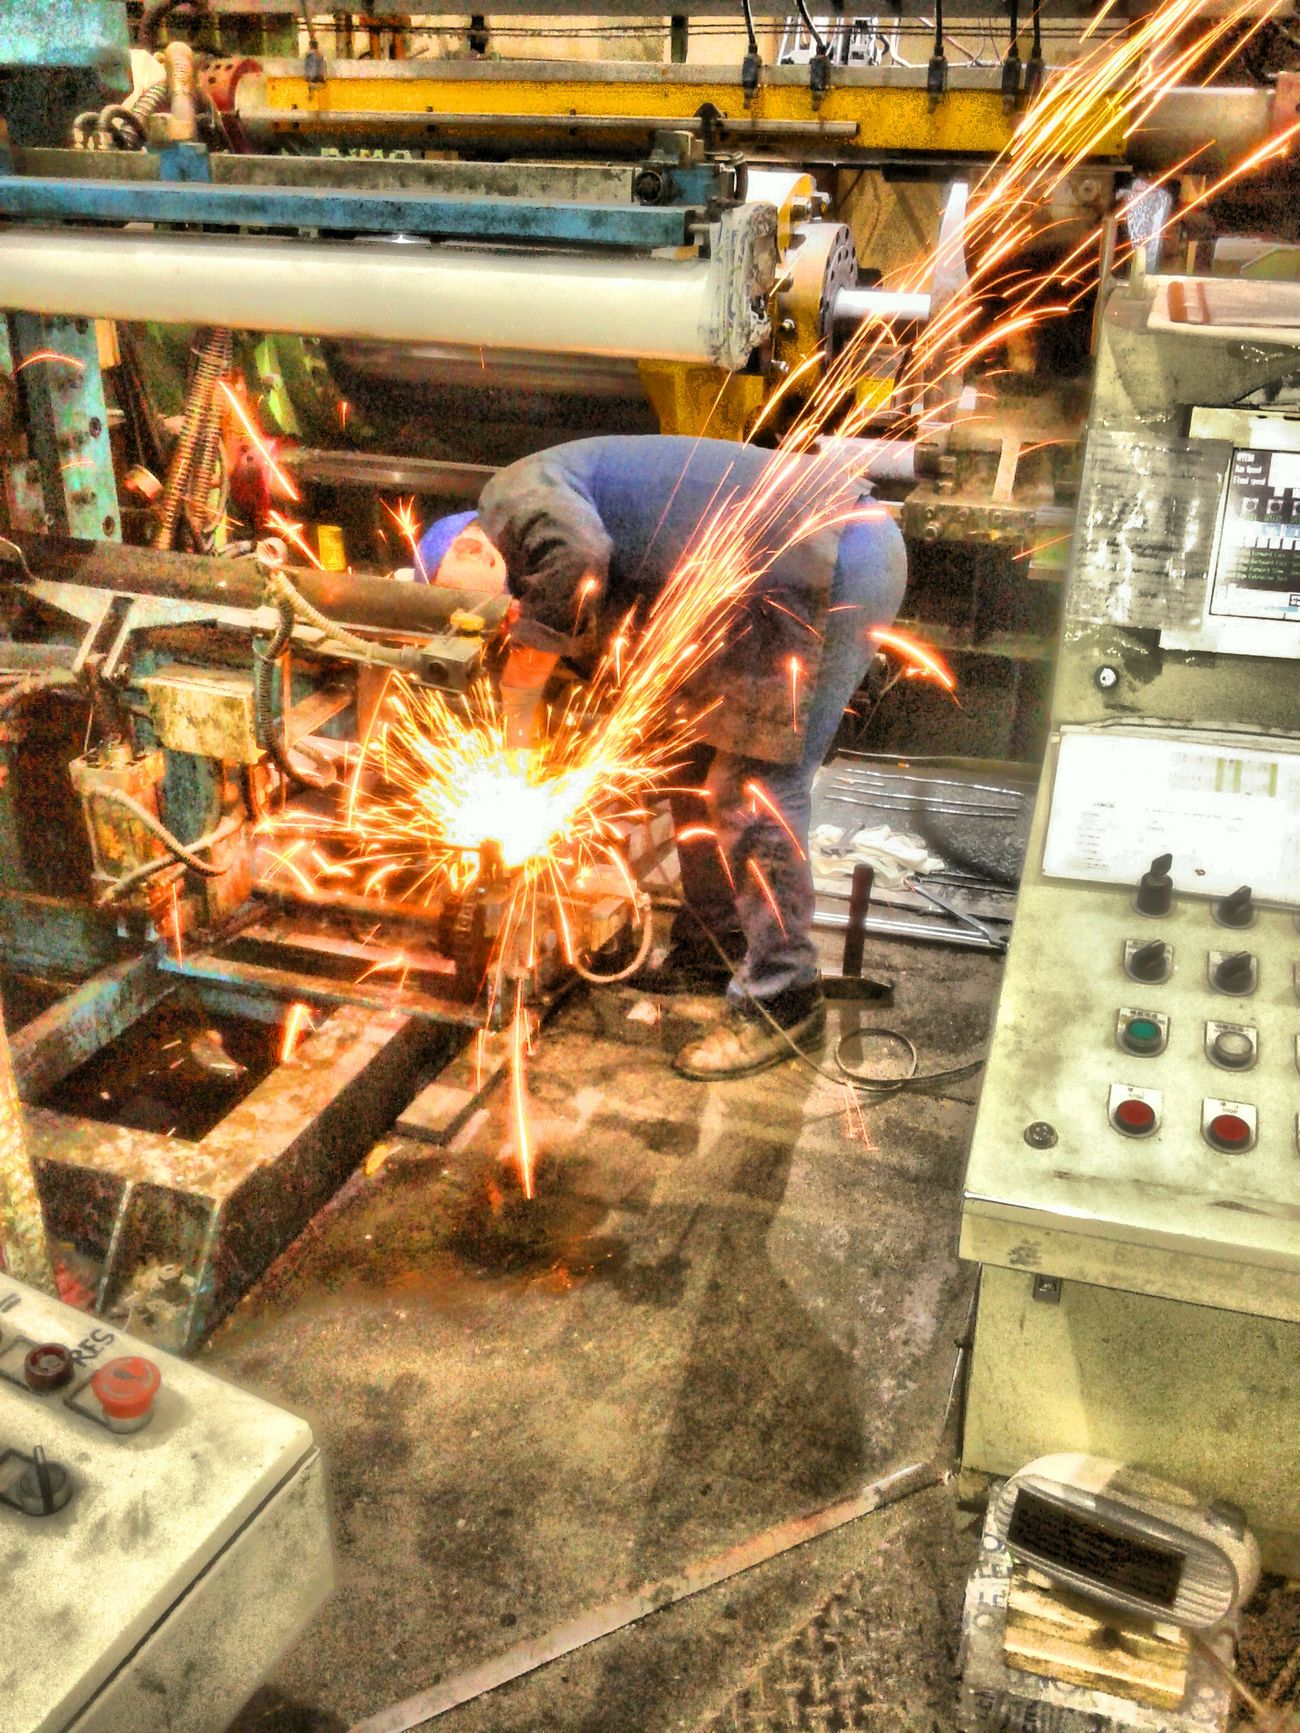 Working Sparks Industry Heat - Temperature Indoors  Metal Industry Welding Men Factory One Person Only Men Occupation One Man Only Welder Day People